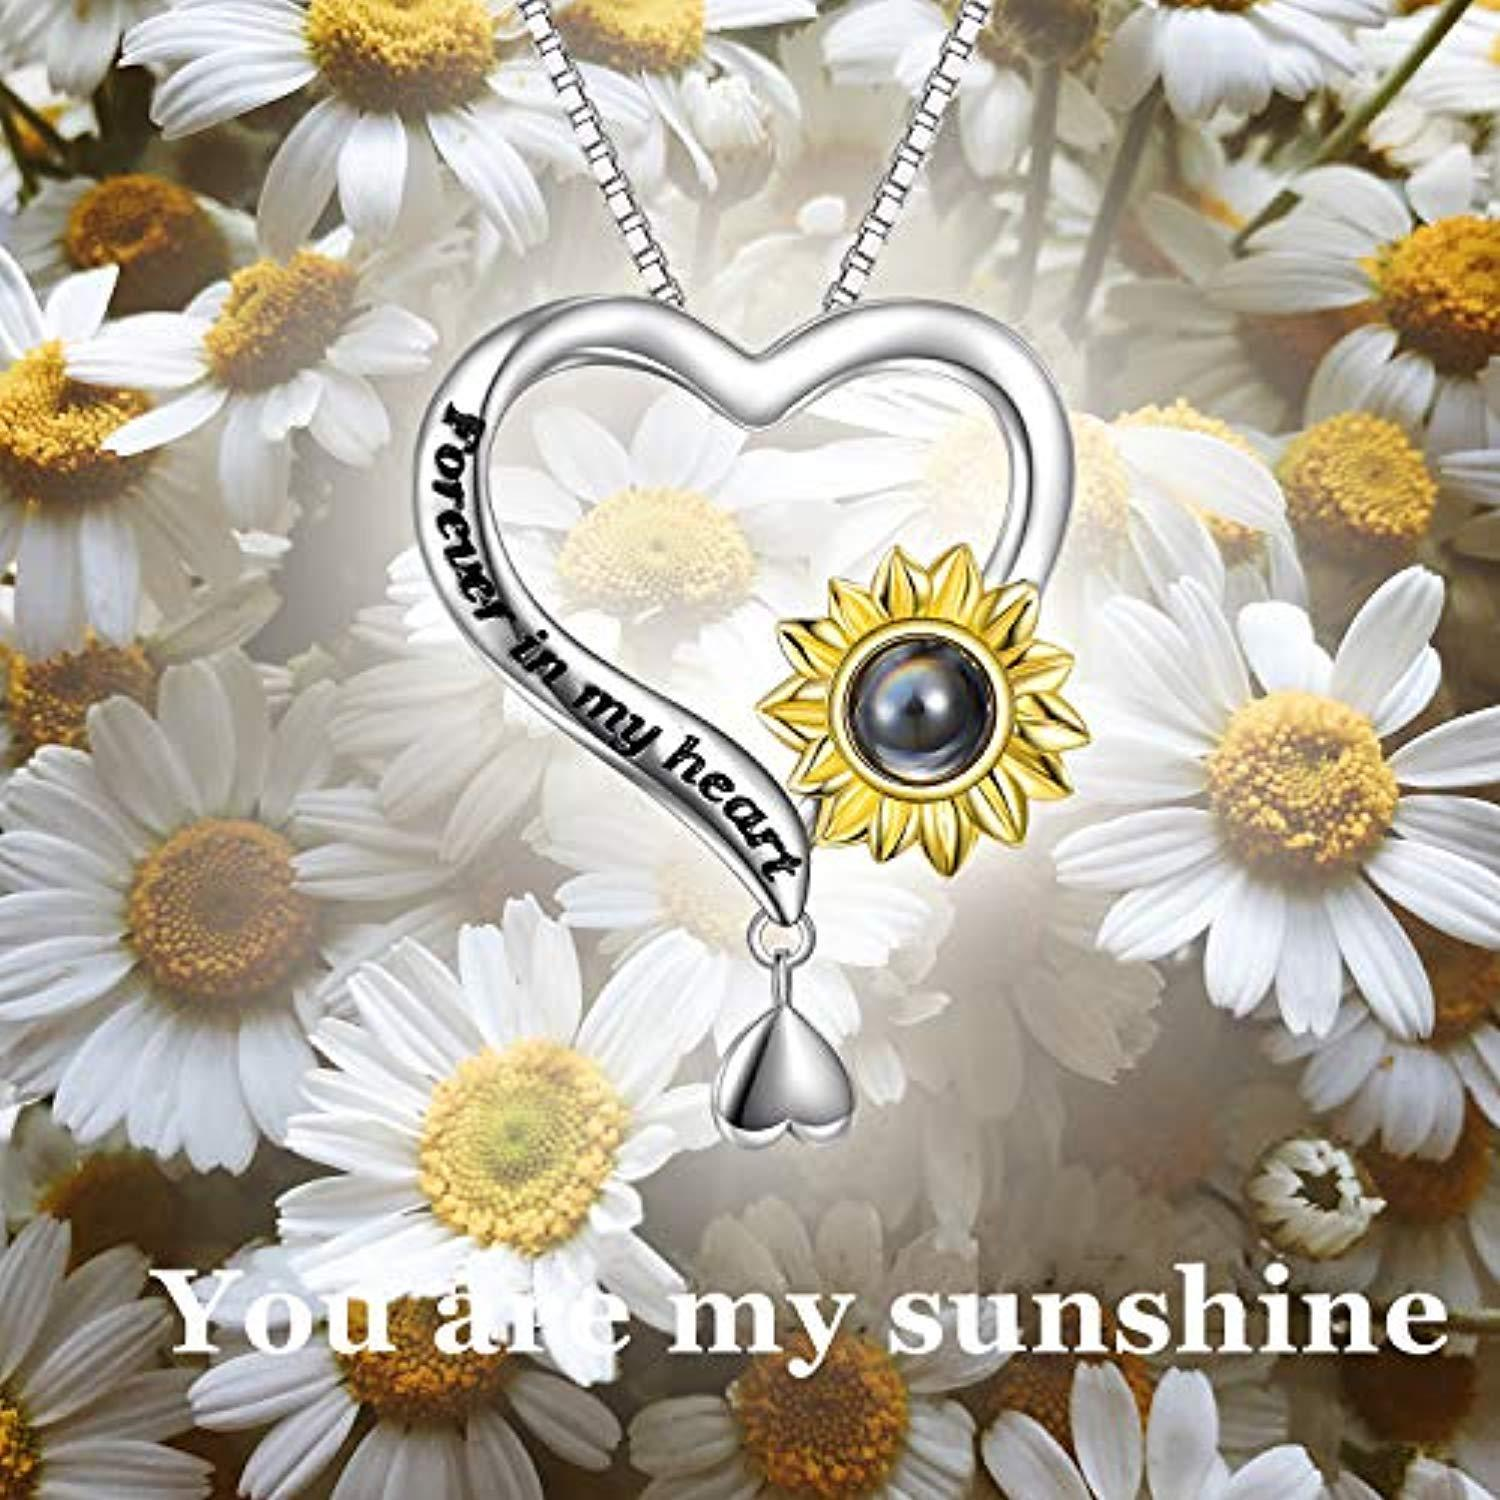 Orcbee/_100 Languages Say I Love You Heart Sunflower Projection Necklace Gift to Mom Daughter